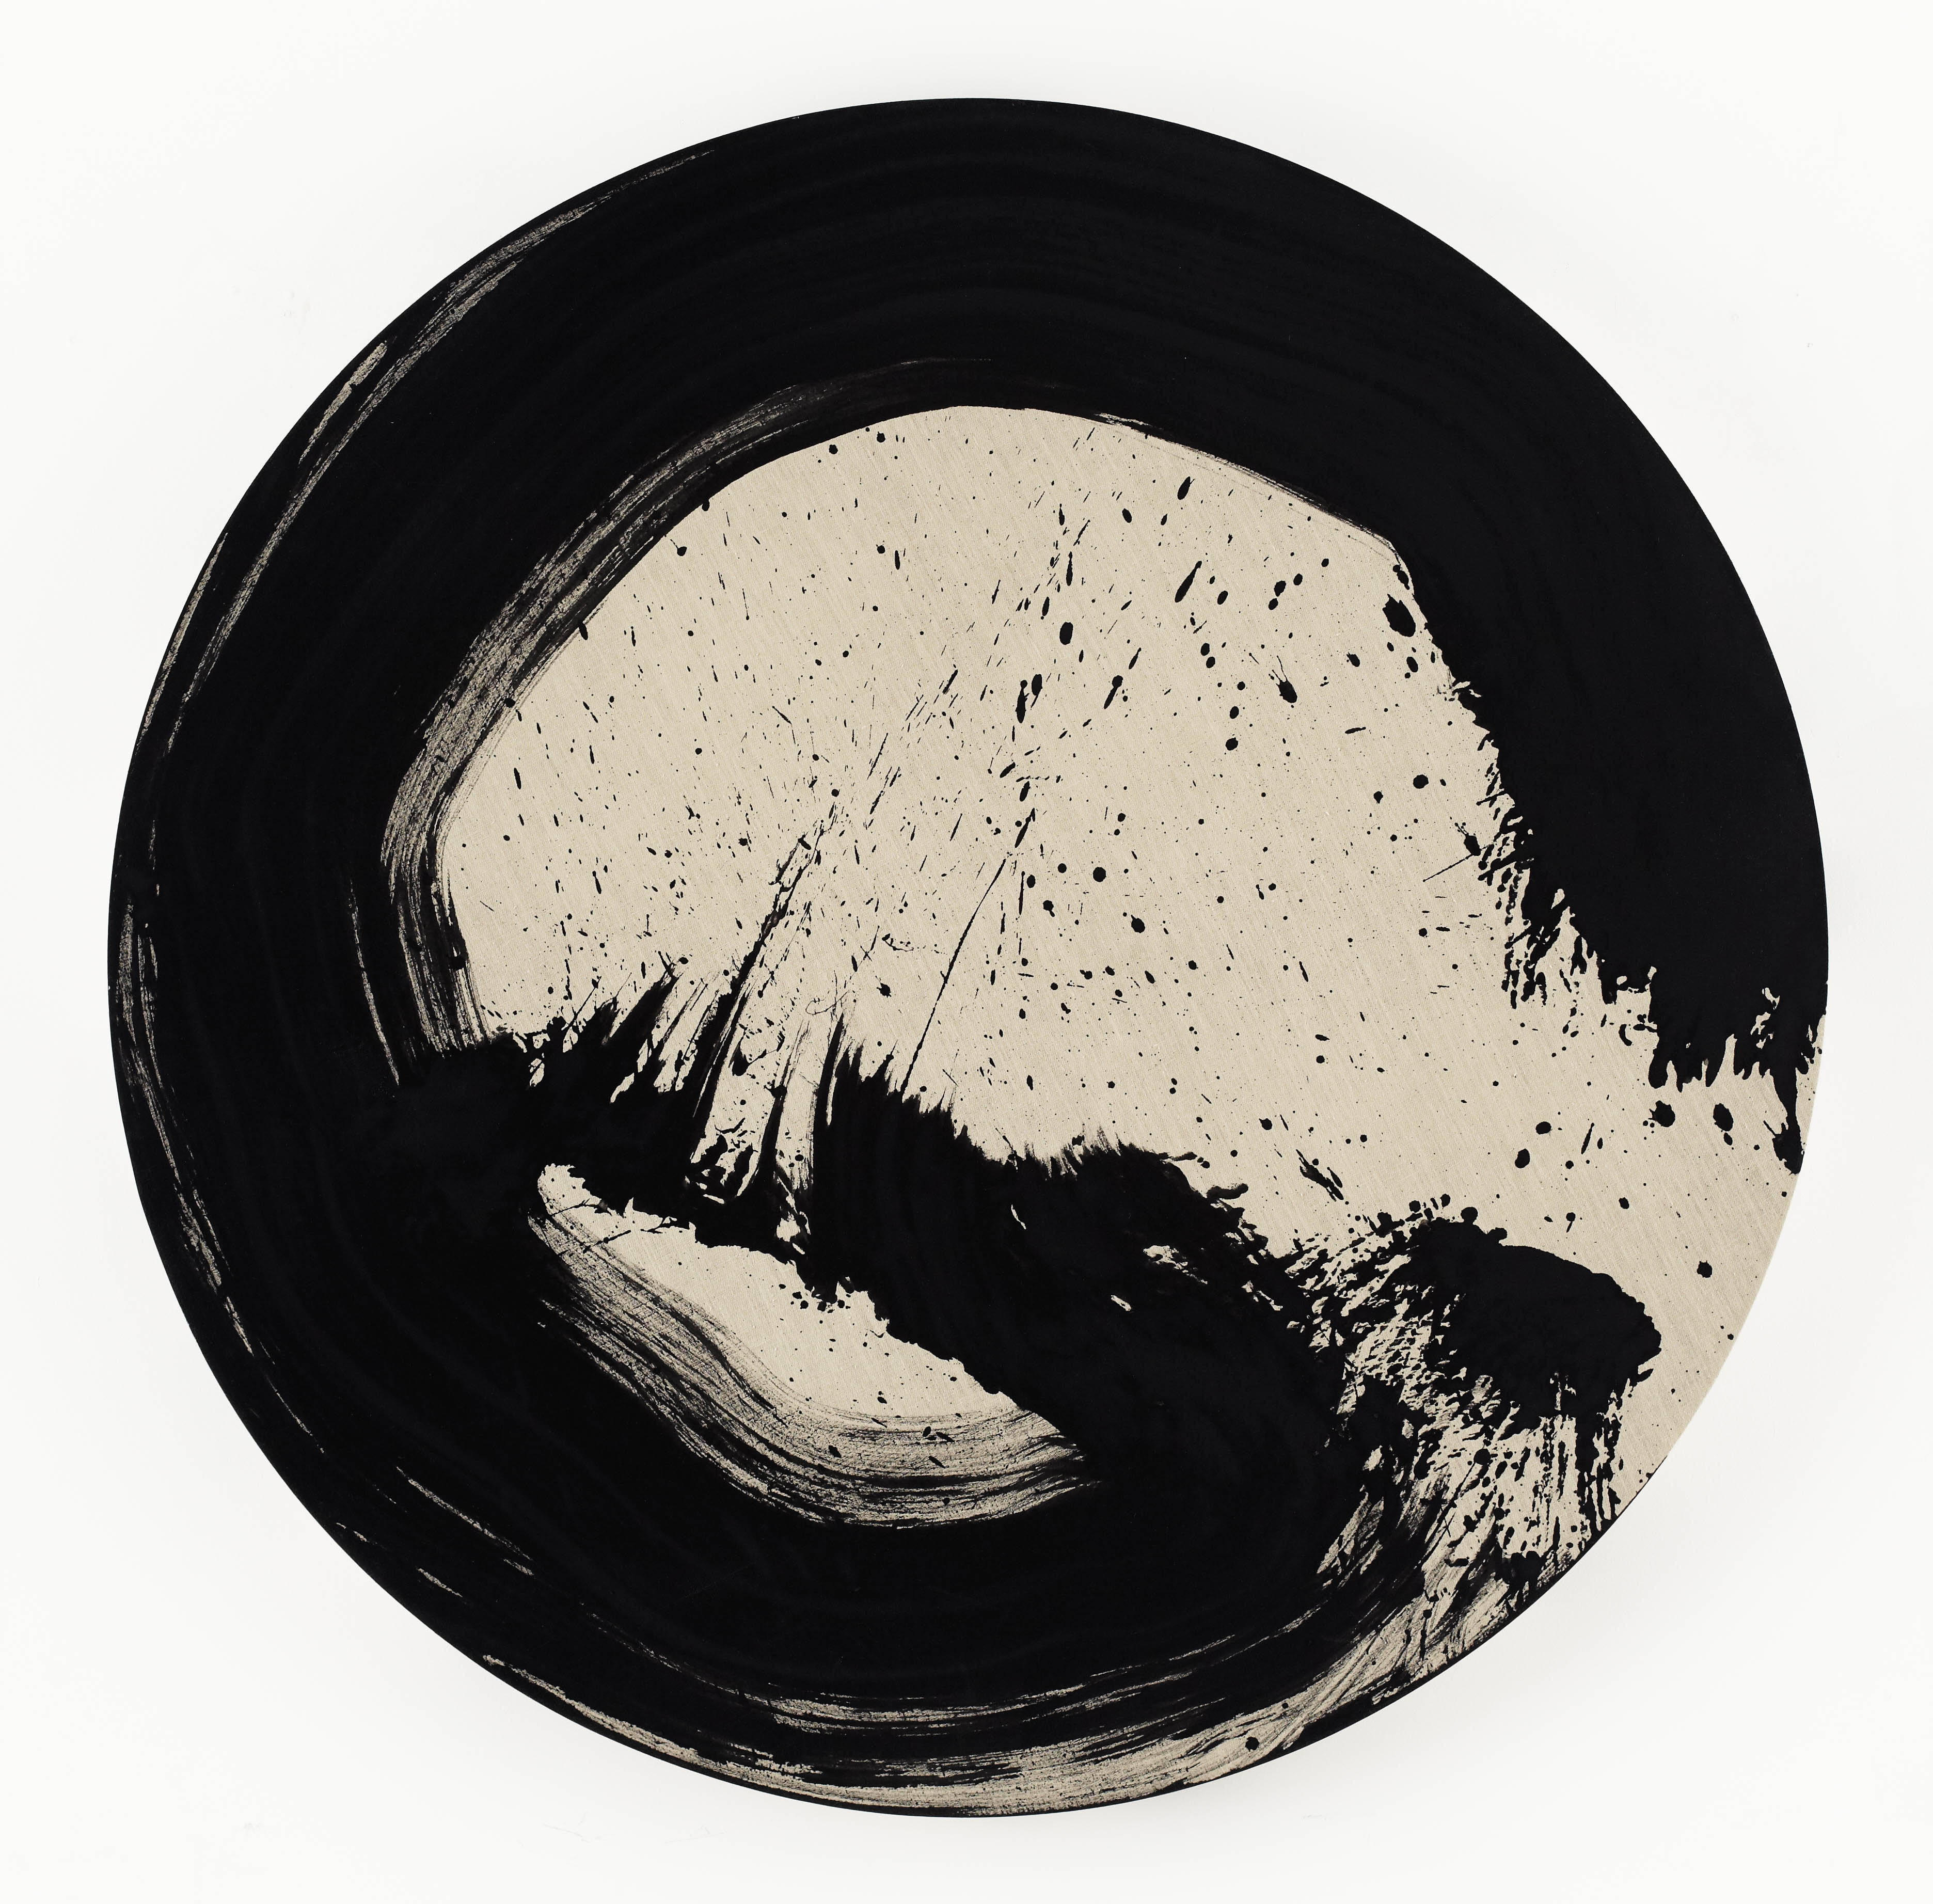 This September Max Gimblett will participate